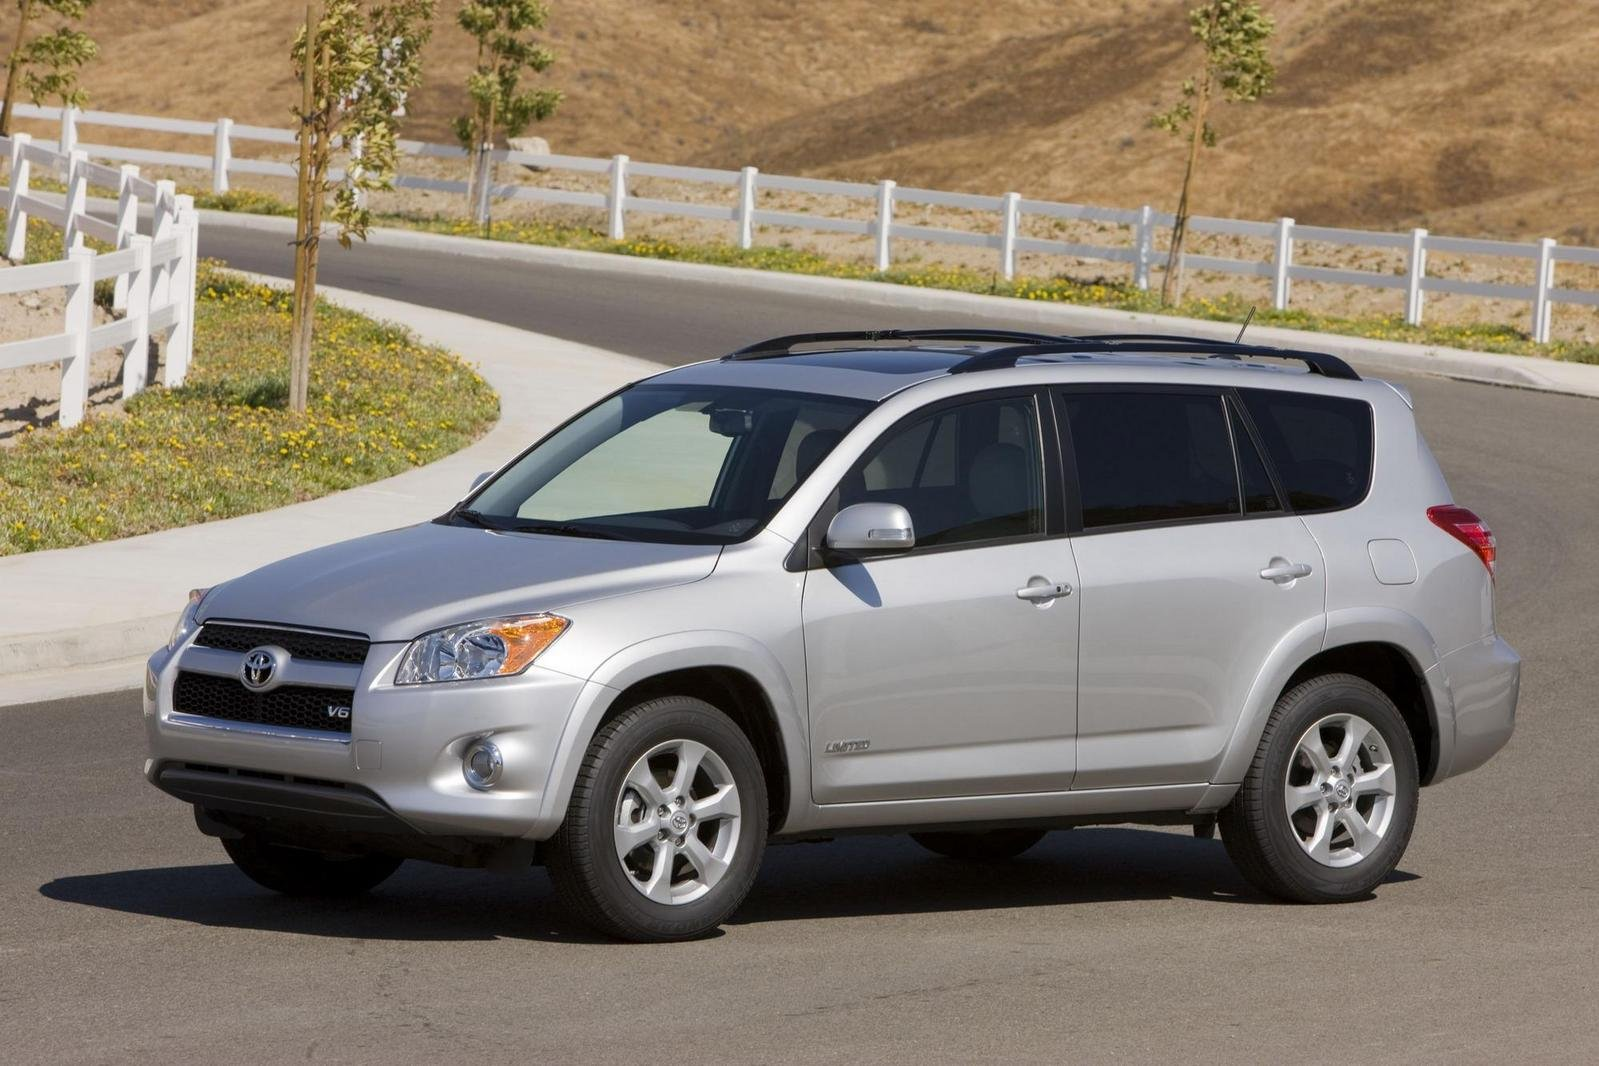 2010 toyota rav4 picture 323745 car review top speed. Black Bedroom Furniture Sets. Home Design Ideas